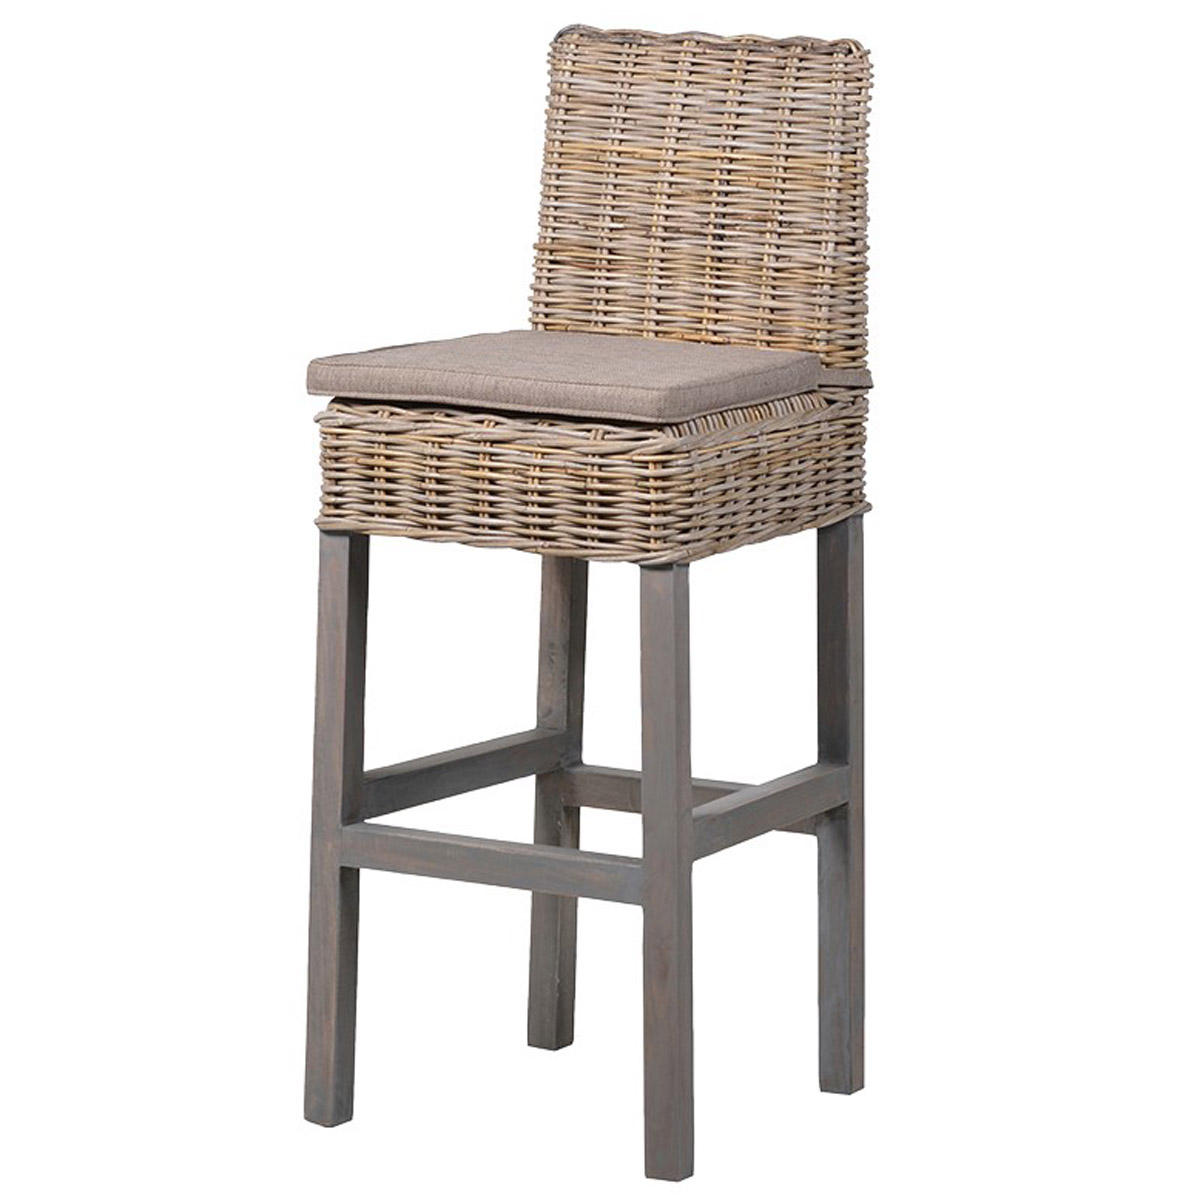 Excellent New England Grey Wicker Bar Stool Bralicious Painted Fabric Chair Ideas Braliciousco